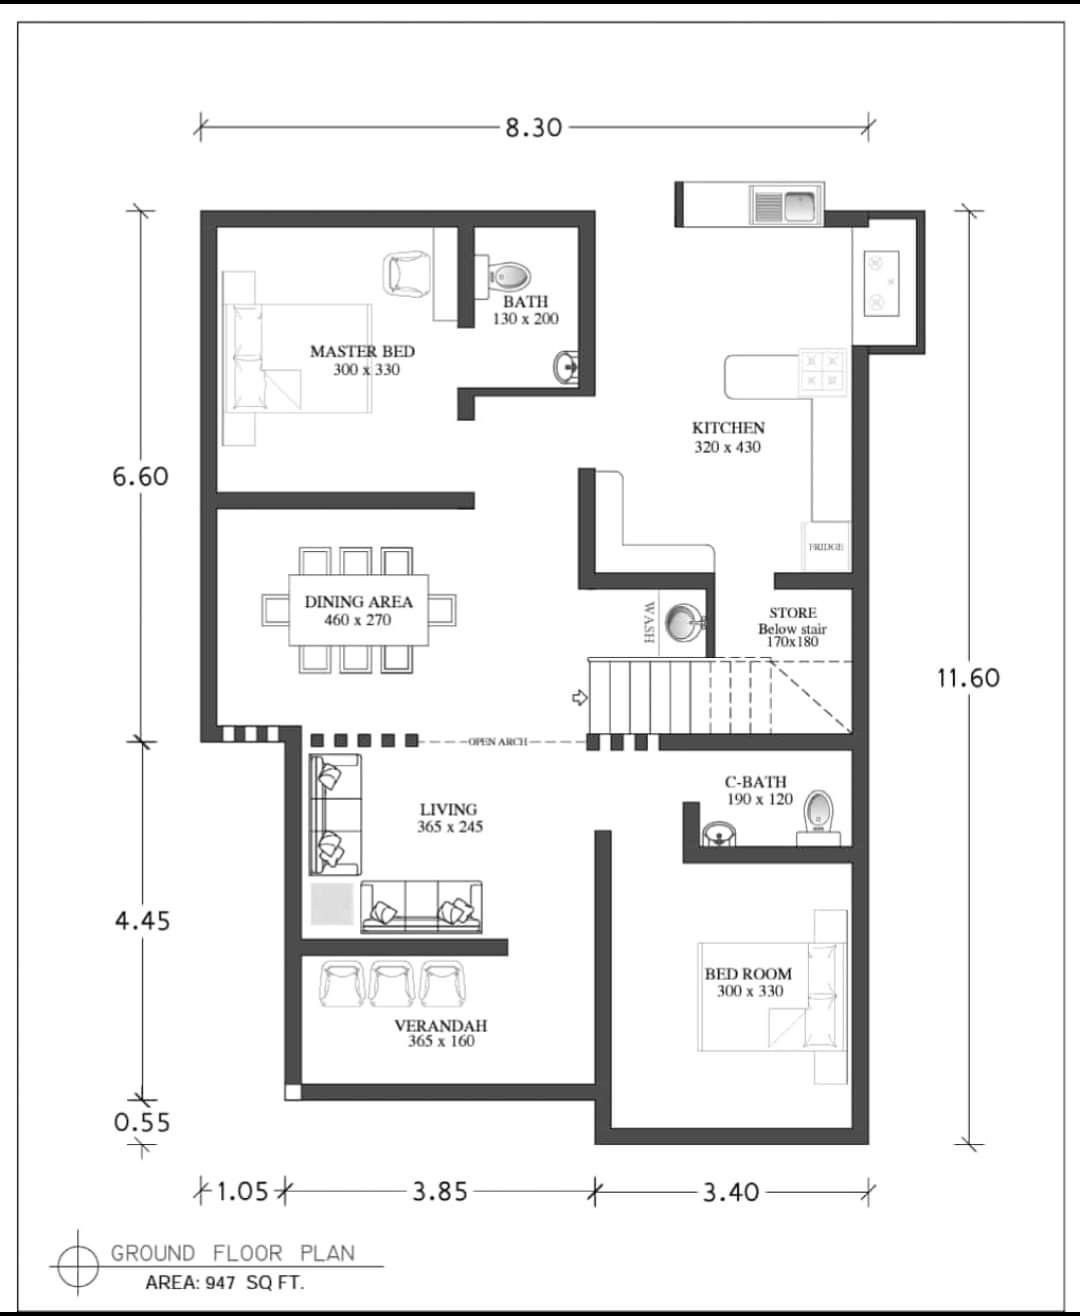 Pin By Beeya On Home Plans With Images Indian House Plans